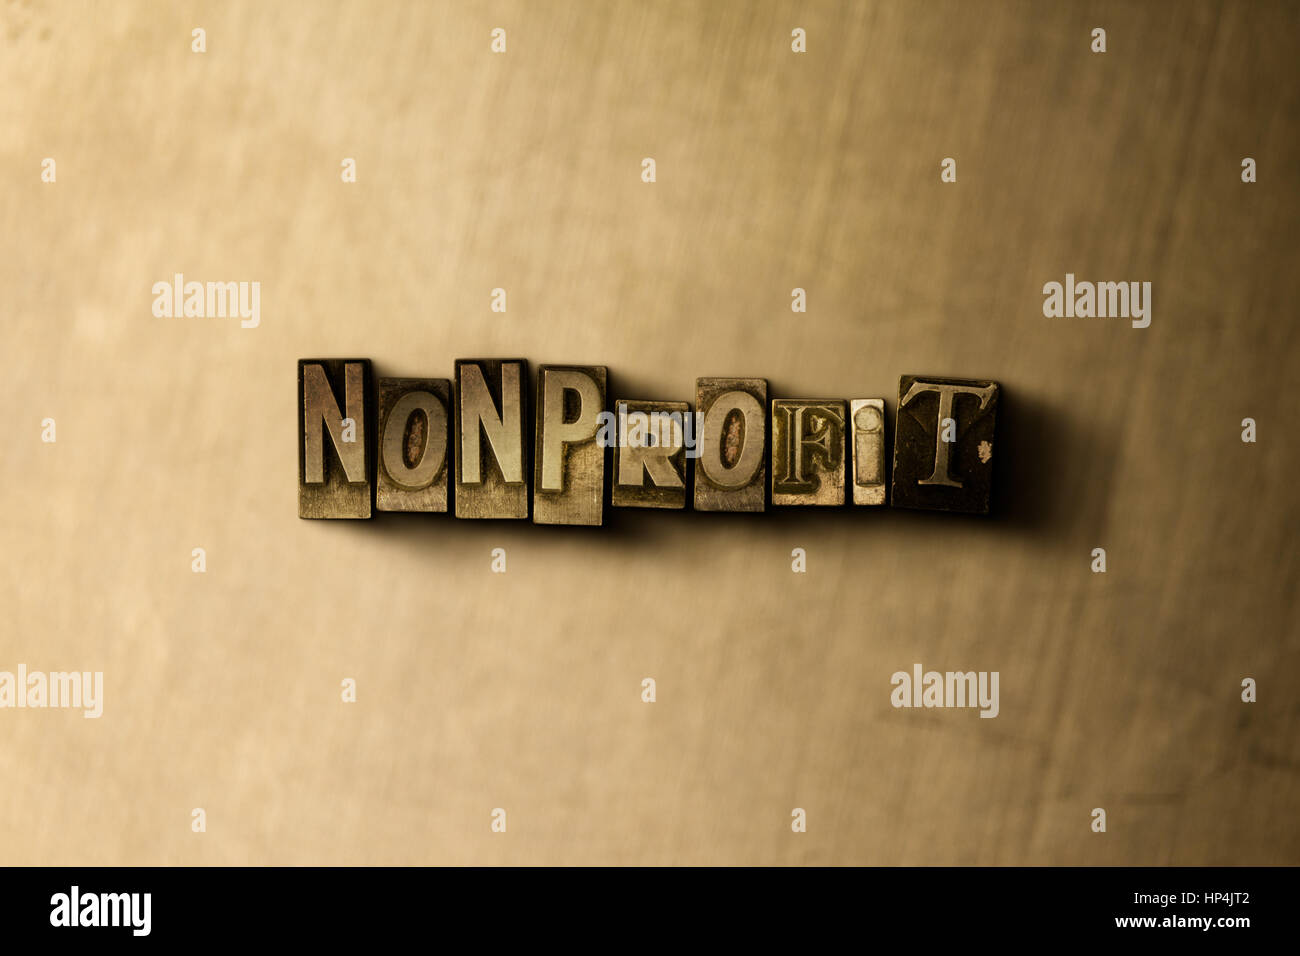 NONPROFIT - close-up of grungy vintage typeset word on metal backdrop. Royalty free stock illustration.  Can be - Stock Image